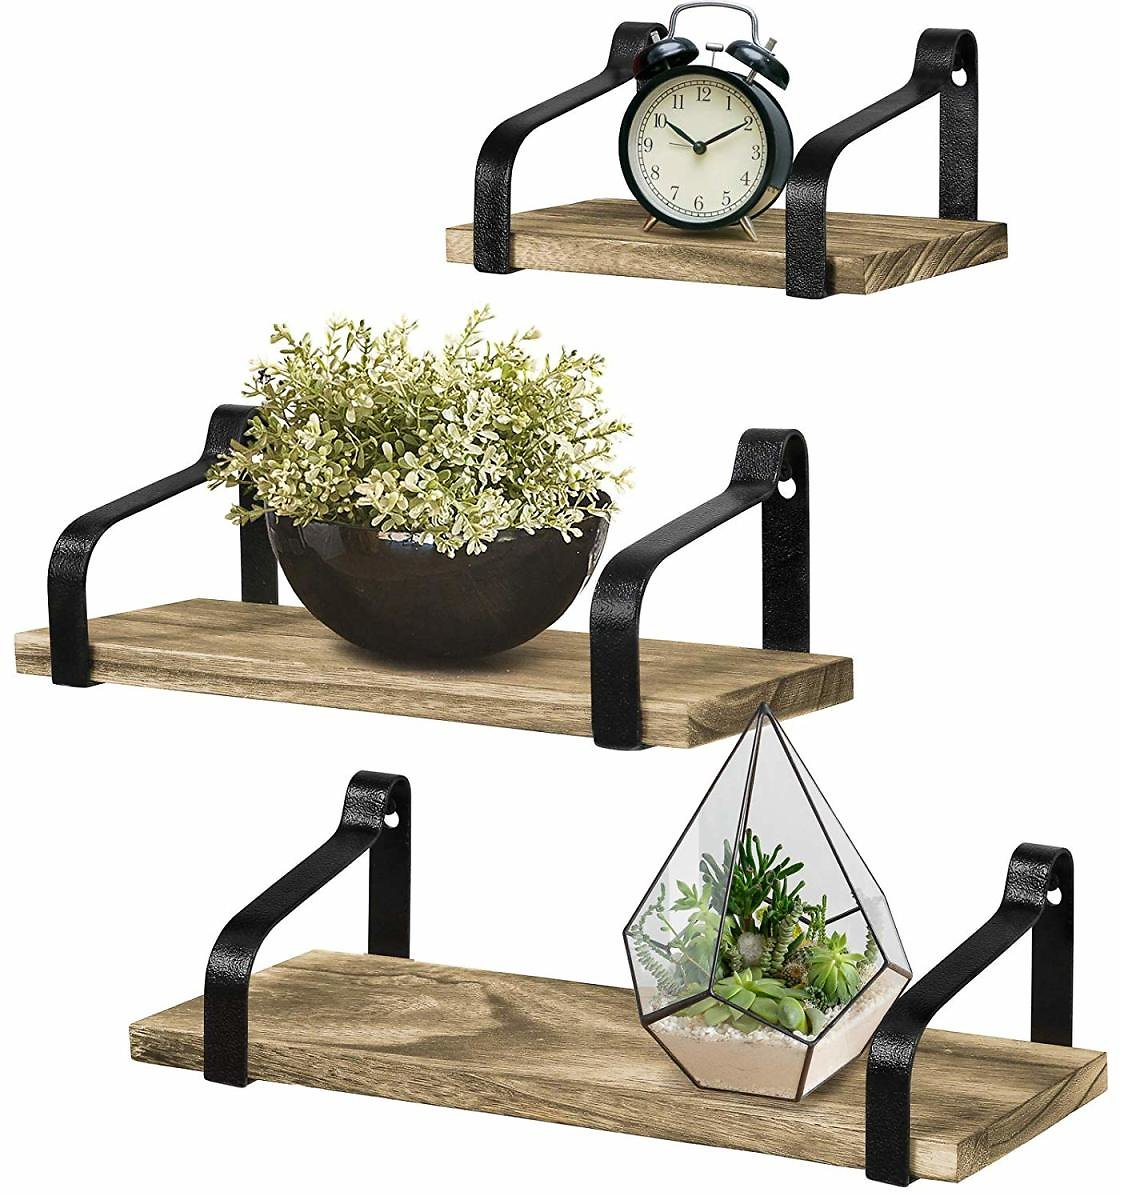 Greenco Set of 3 Rustic Wall Mounted Floating Shelves For Living Room, Dining Room, Office, Bedrooms.